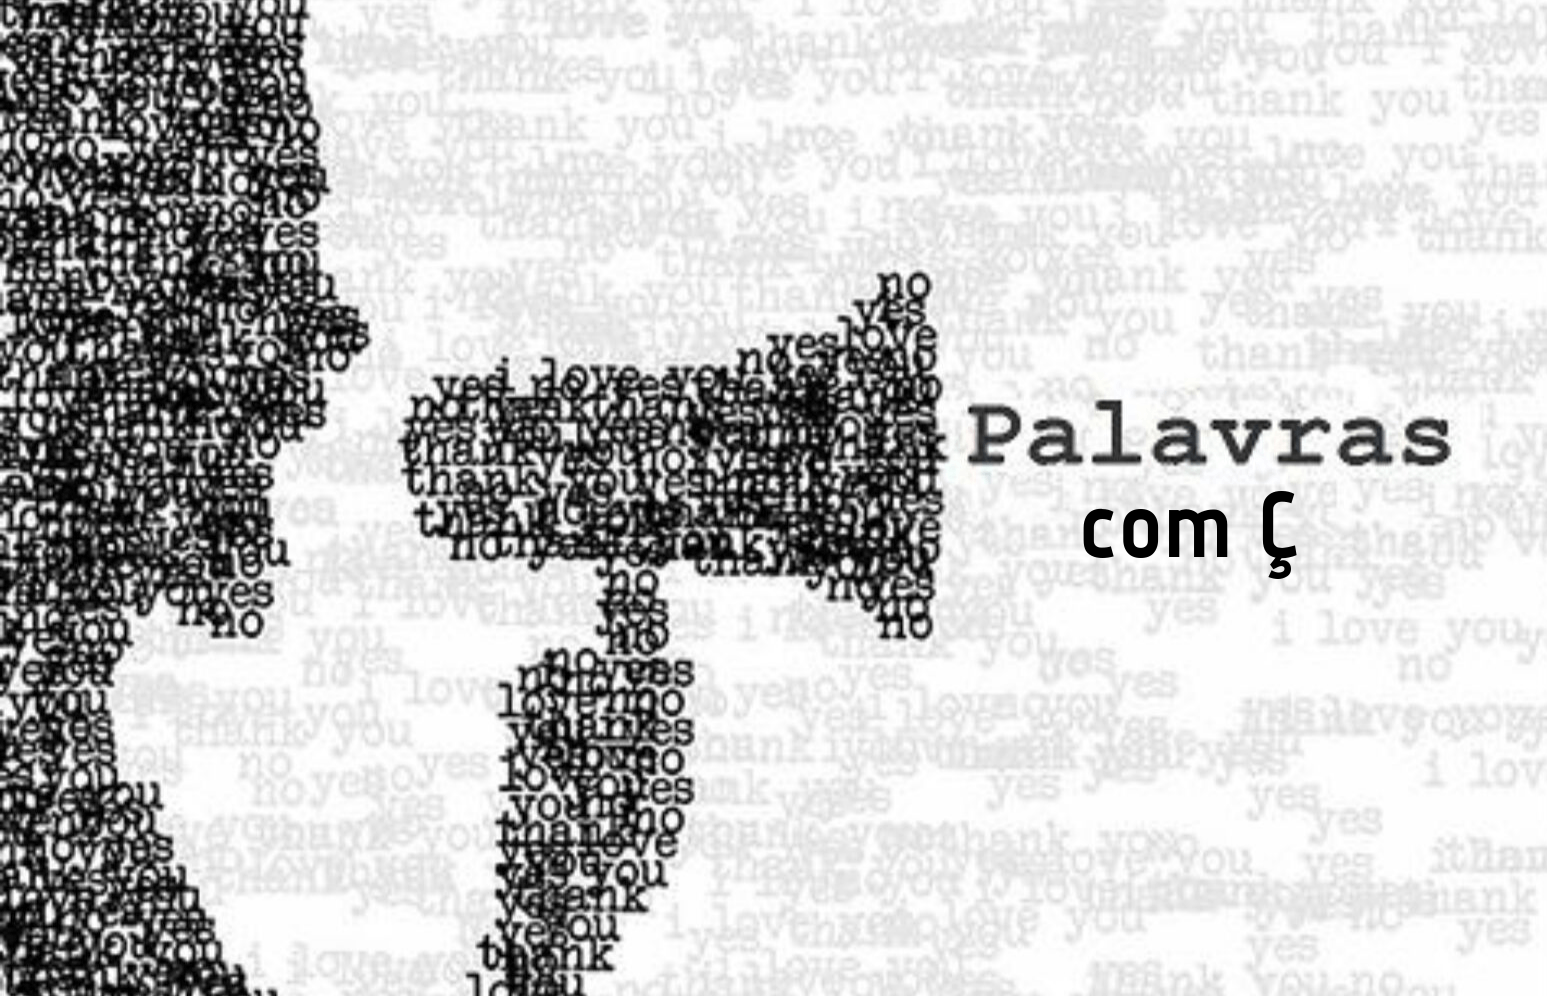 You are currently viewing ▷ 600 Palavras Com Ç